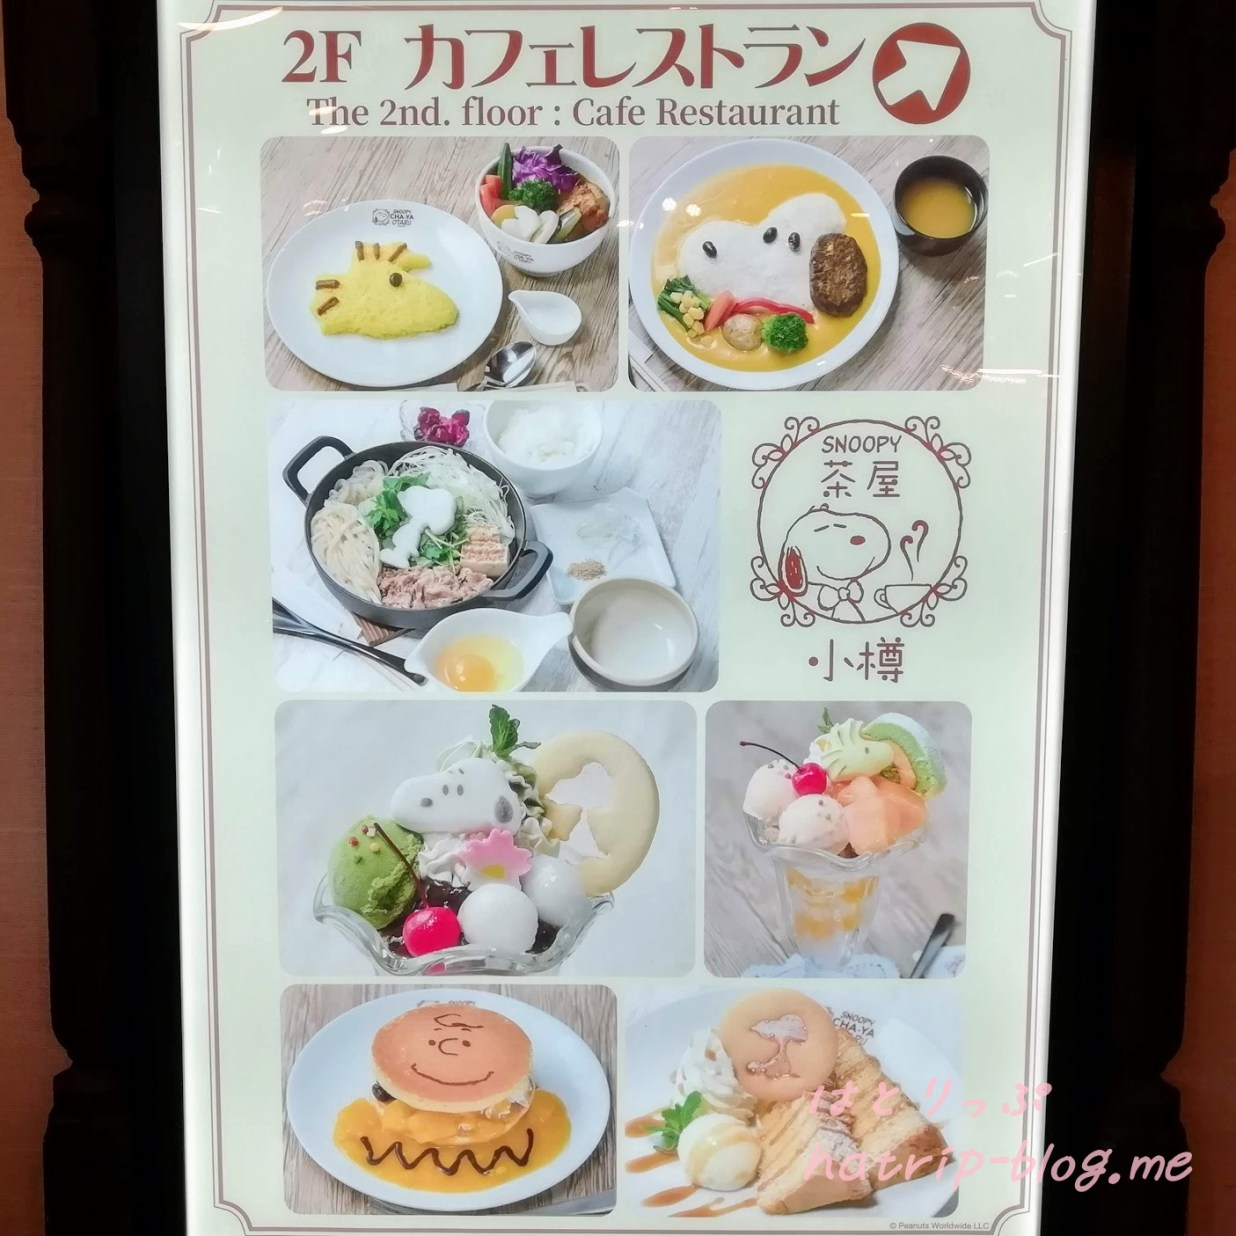 SNOOPY茶屋 小樽店 カフェレストラン